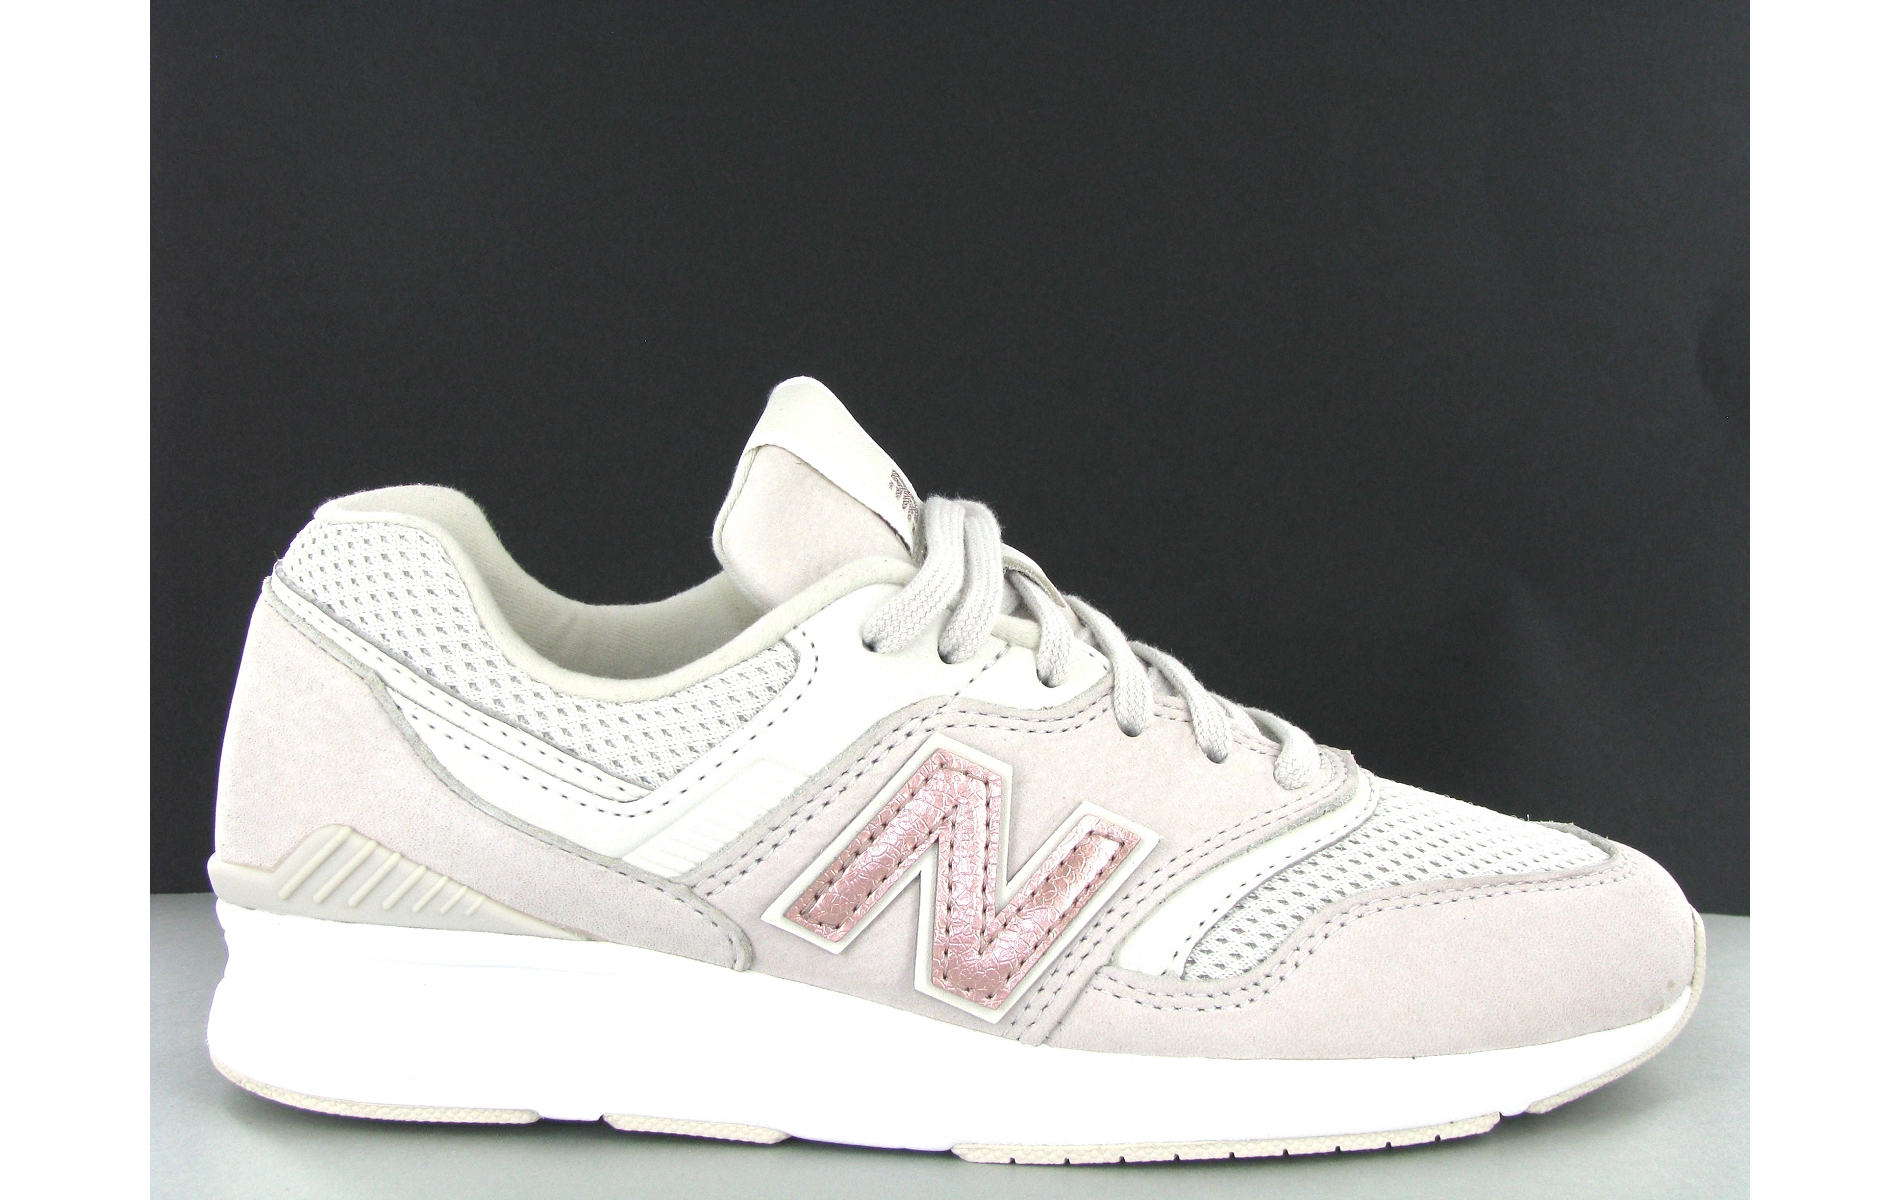 chaussure new balance clermont ferrand